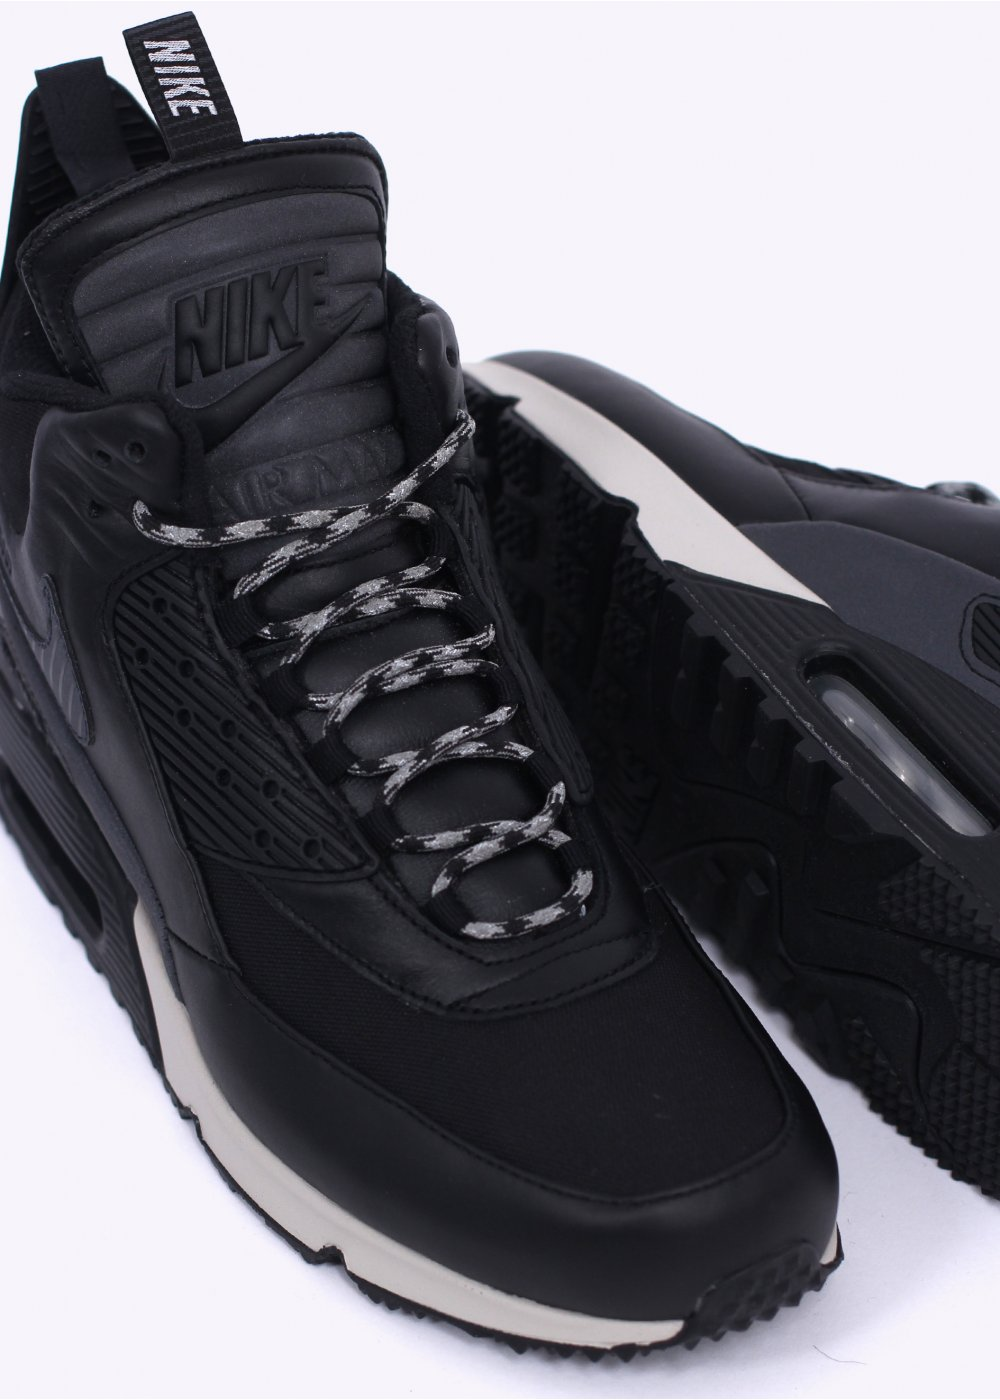 separation shoes b2e6f 49468 ... coupon for air max 90 sneakerboot black reflective 1a1fc 4a825